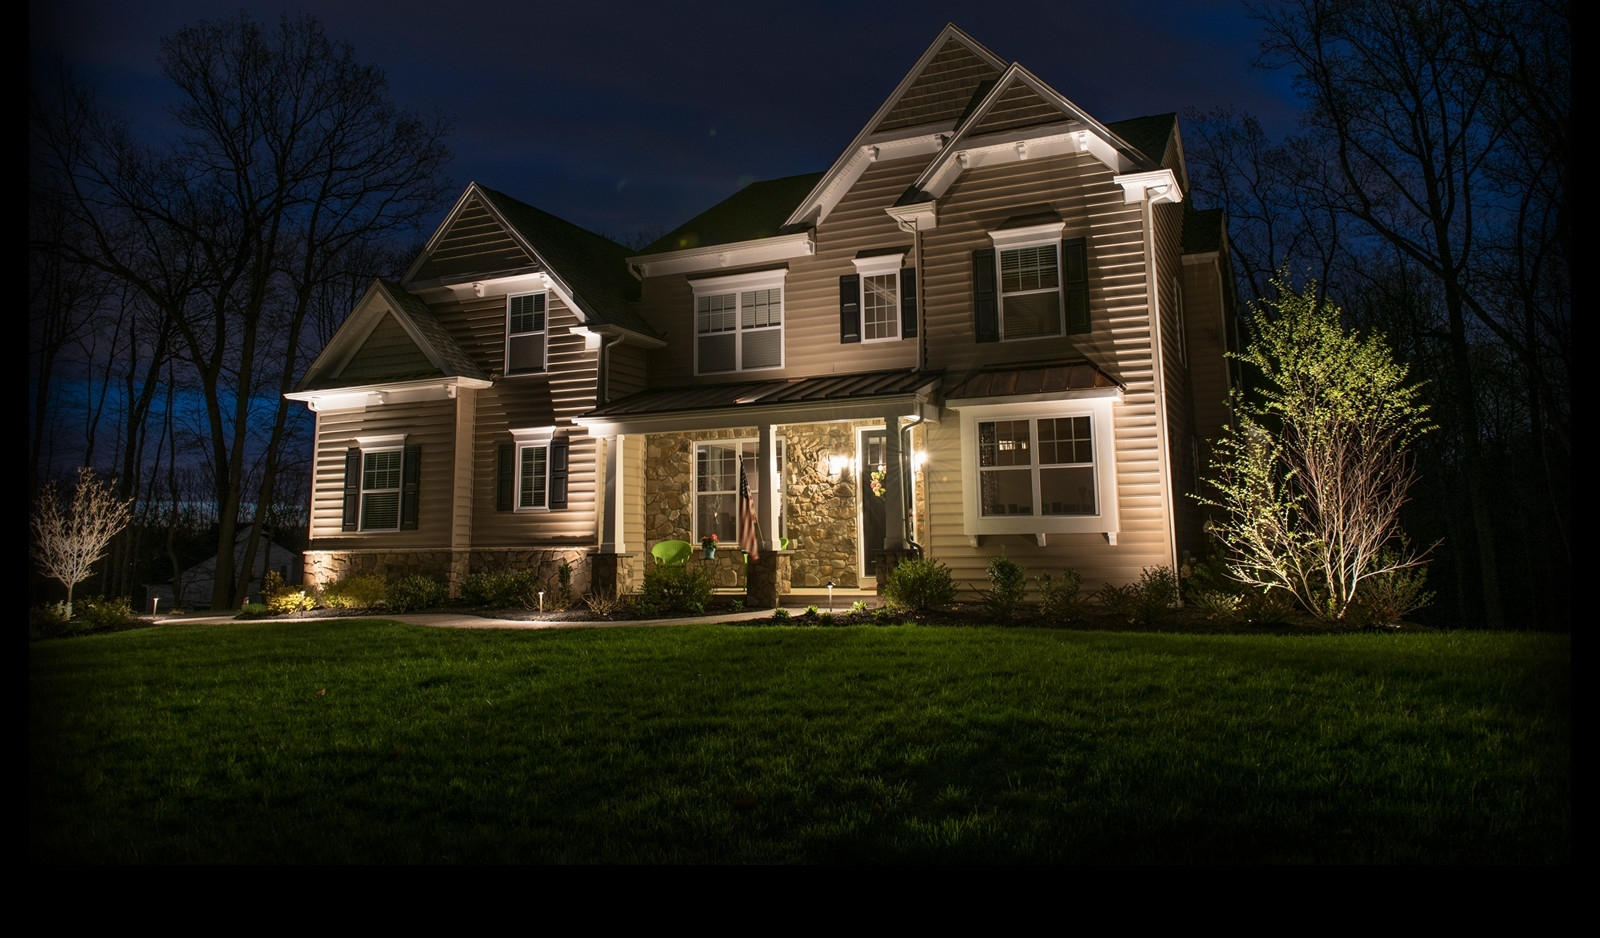 Current Outdoor House Lanterns With Ideas For Hanging Lights Outside Front And Backyard Landscaping (View 9 of 20)